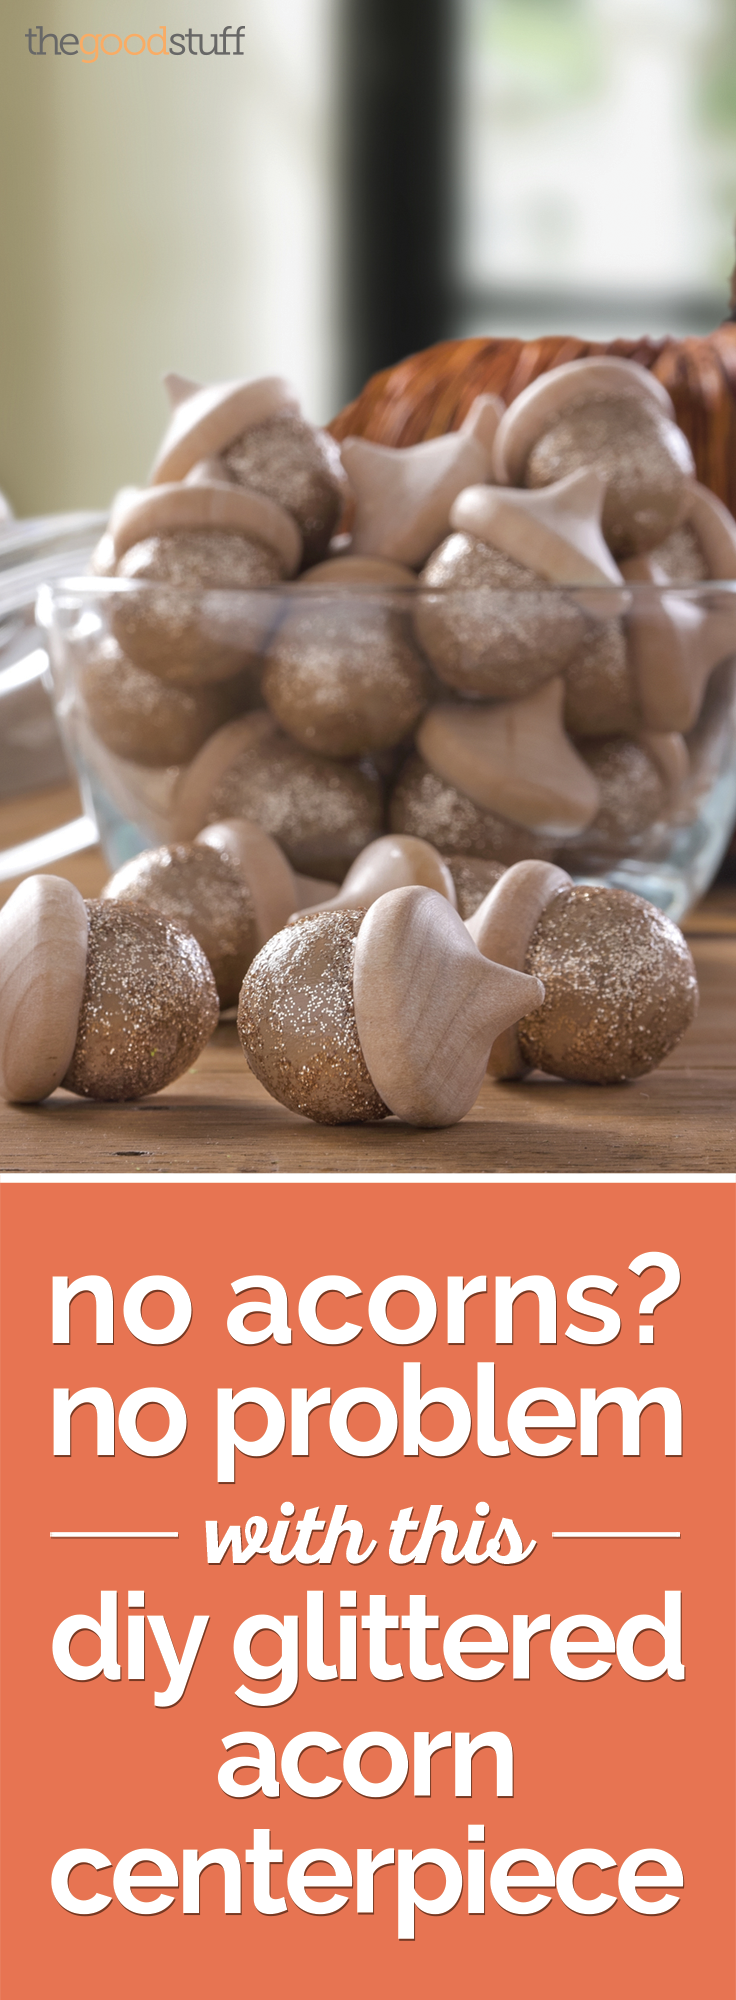 No Acorns? No Problem With This DIY Glittered Acorn Centerpiece | thegoodstuff